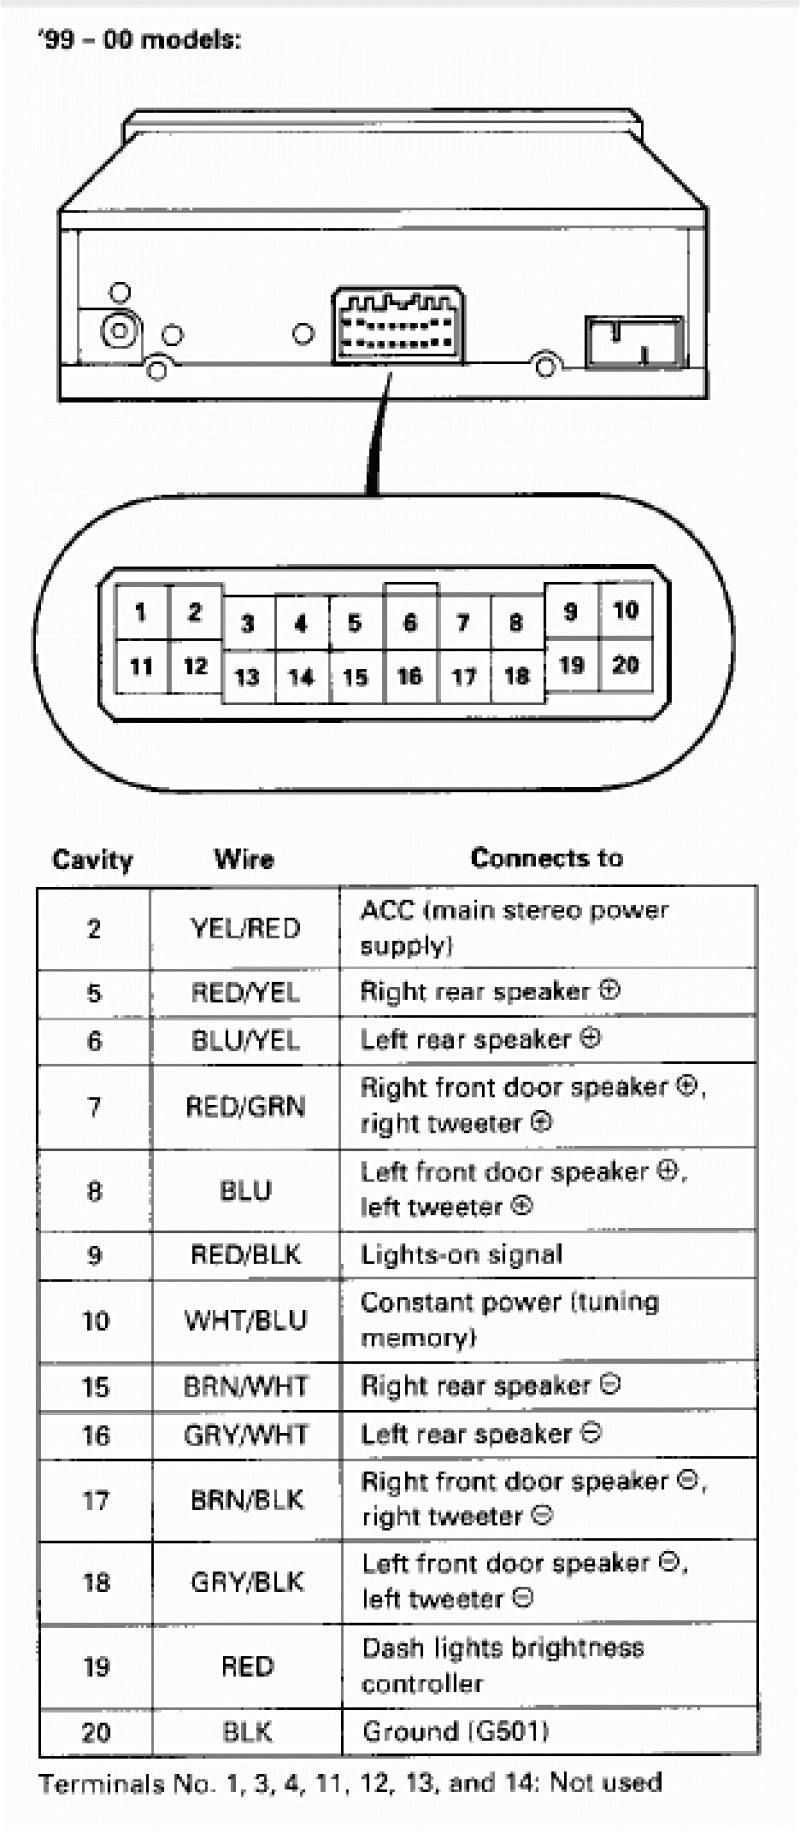 1999 Honda Civic Radio Wiring Diagram from i.pinimg.com